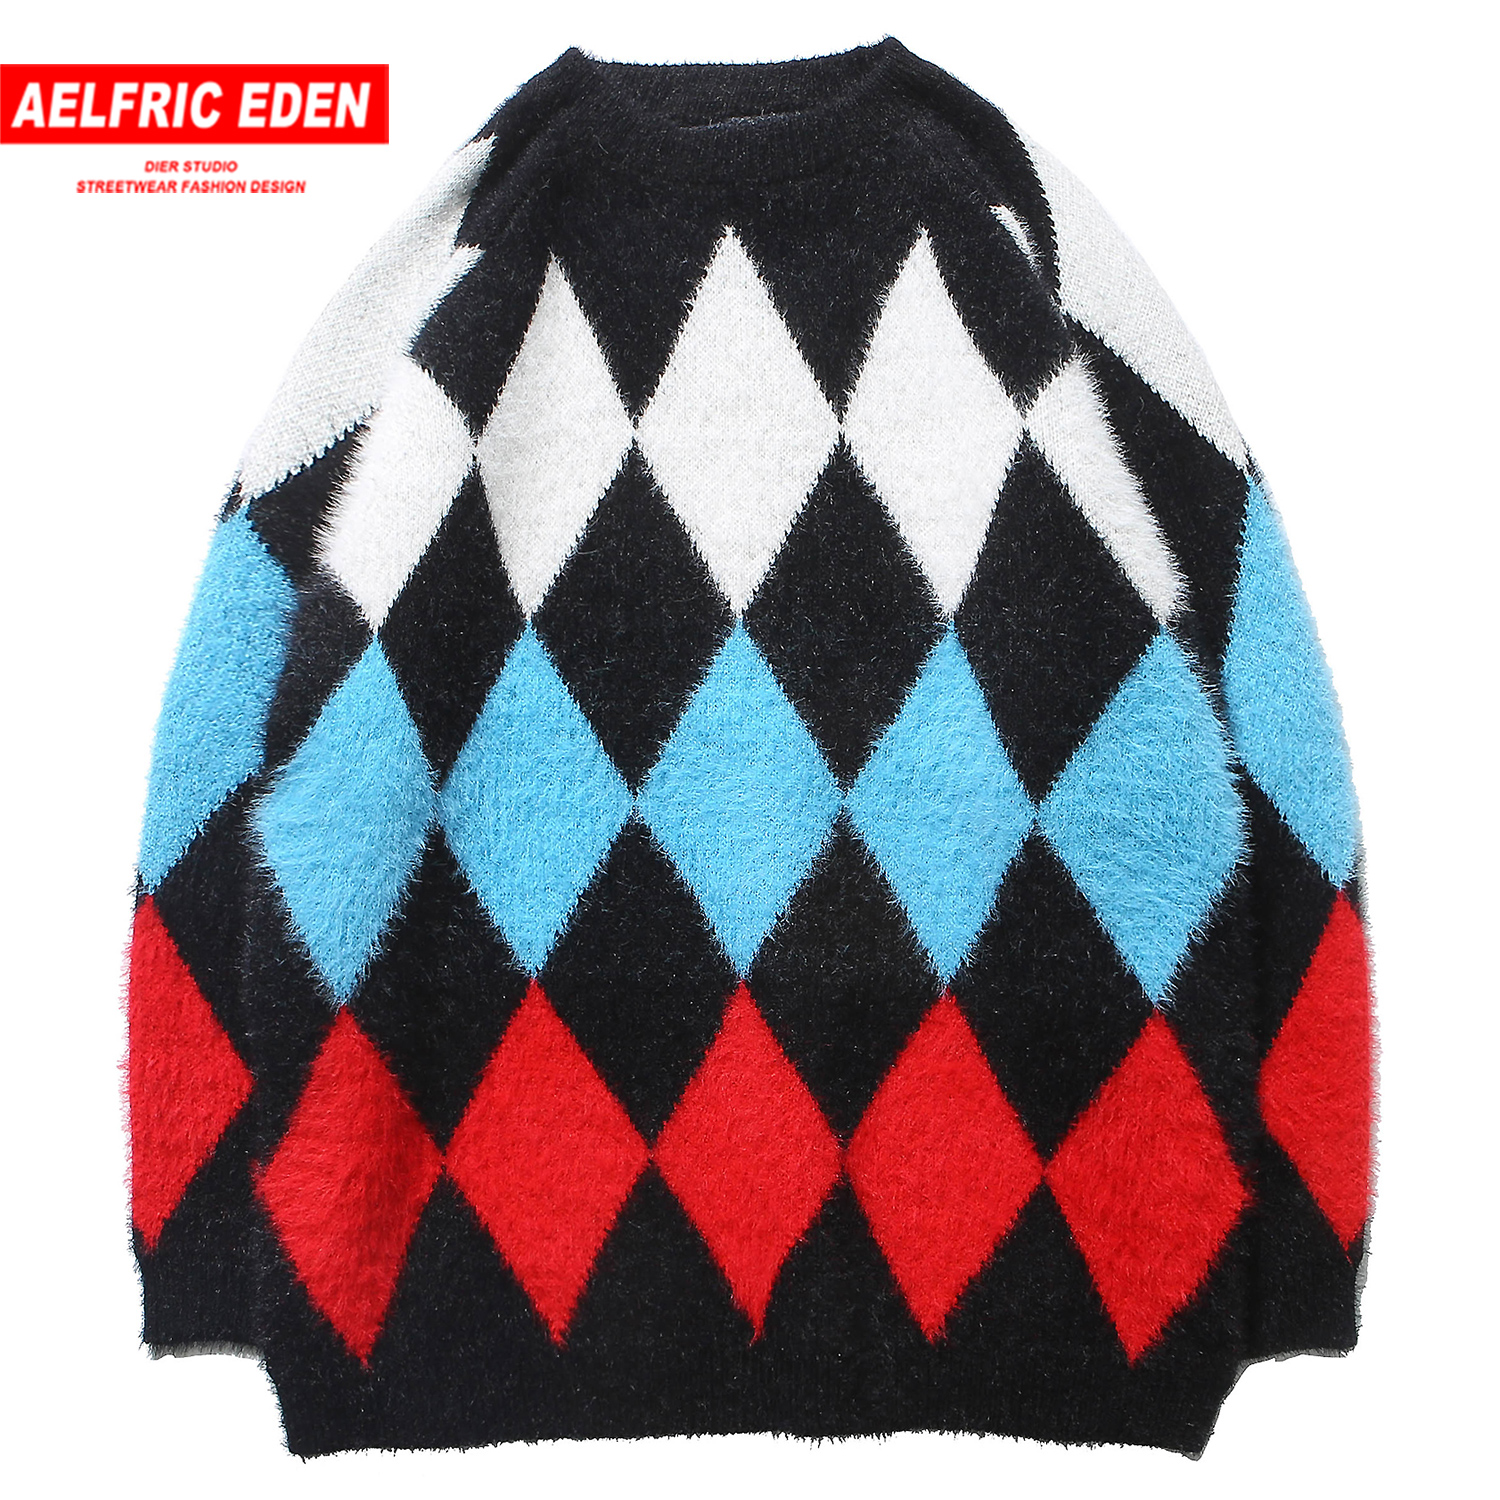 Aelfric Eden Argyle Knitwear Mens Sweaters 2019 Harajuku Fashion Male Oversized Hip Hop Tops Casual Streetwear Pullovers Outwear